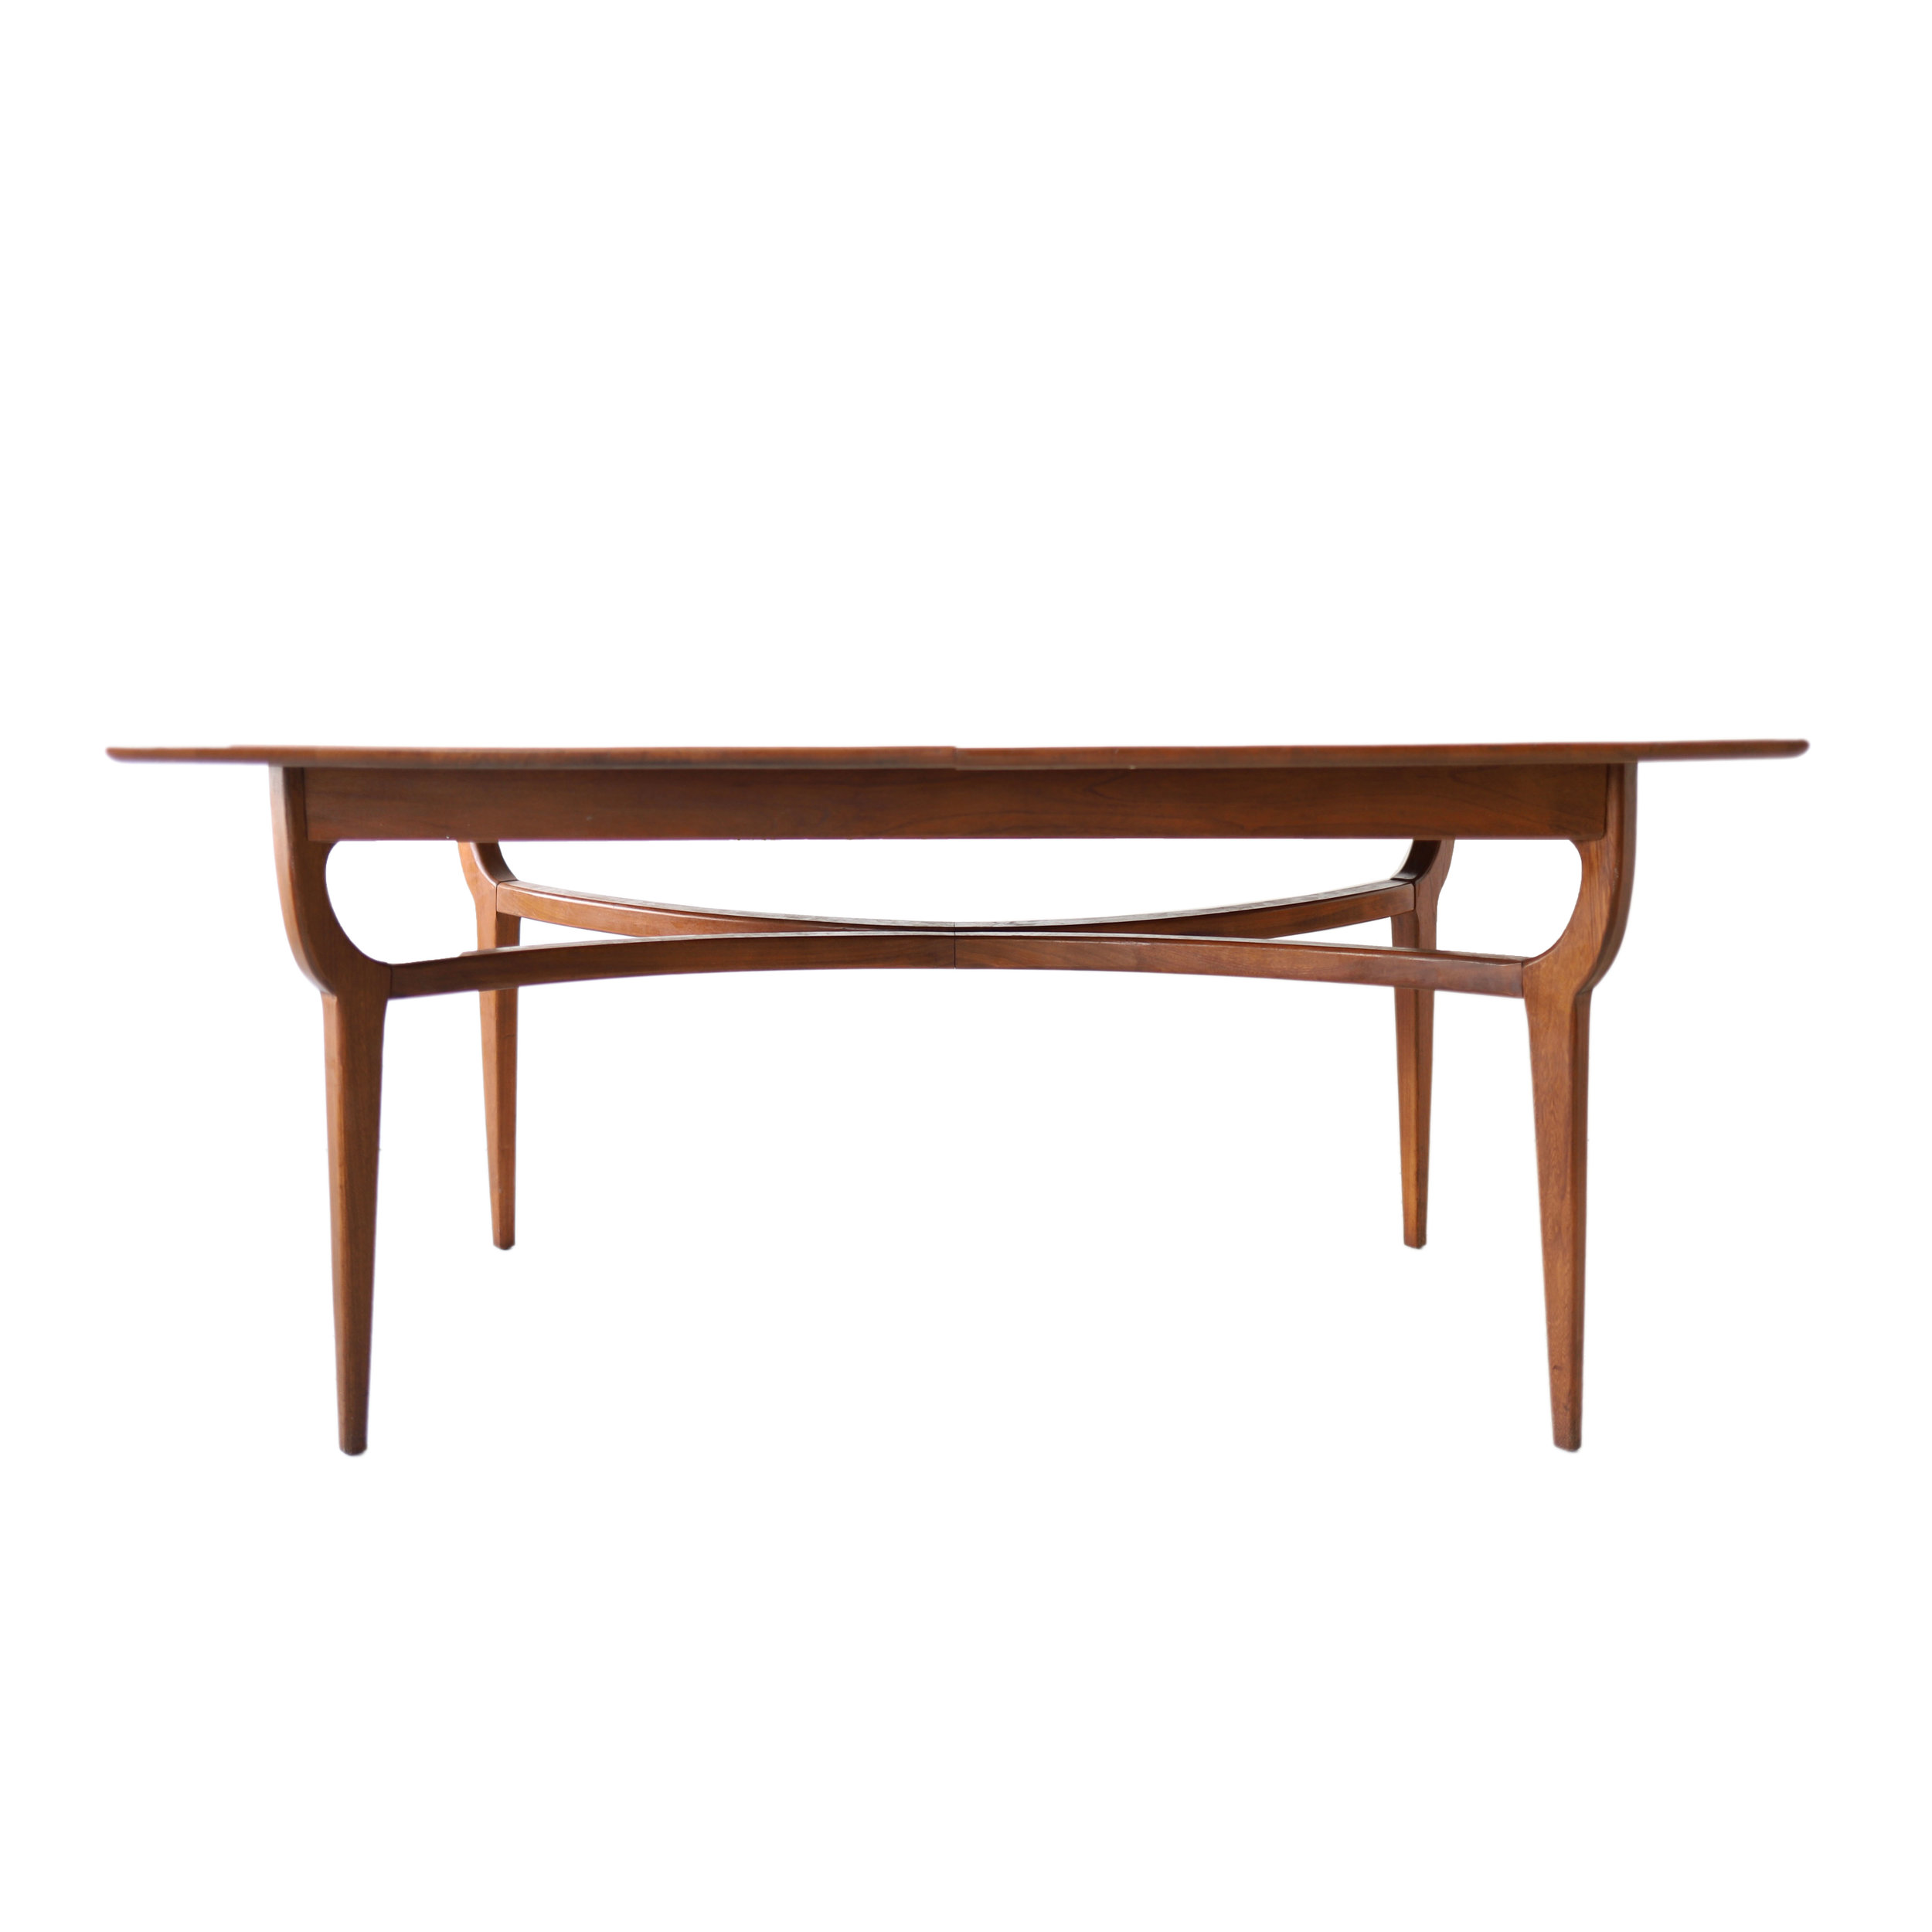 At 1st Sight New Products Vintage Mid Century Modern Extending Geometric Walnut Dining Table